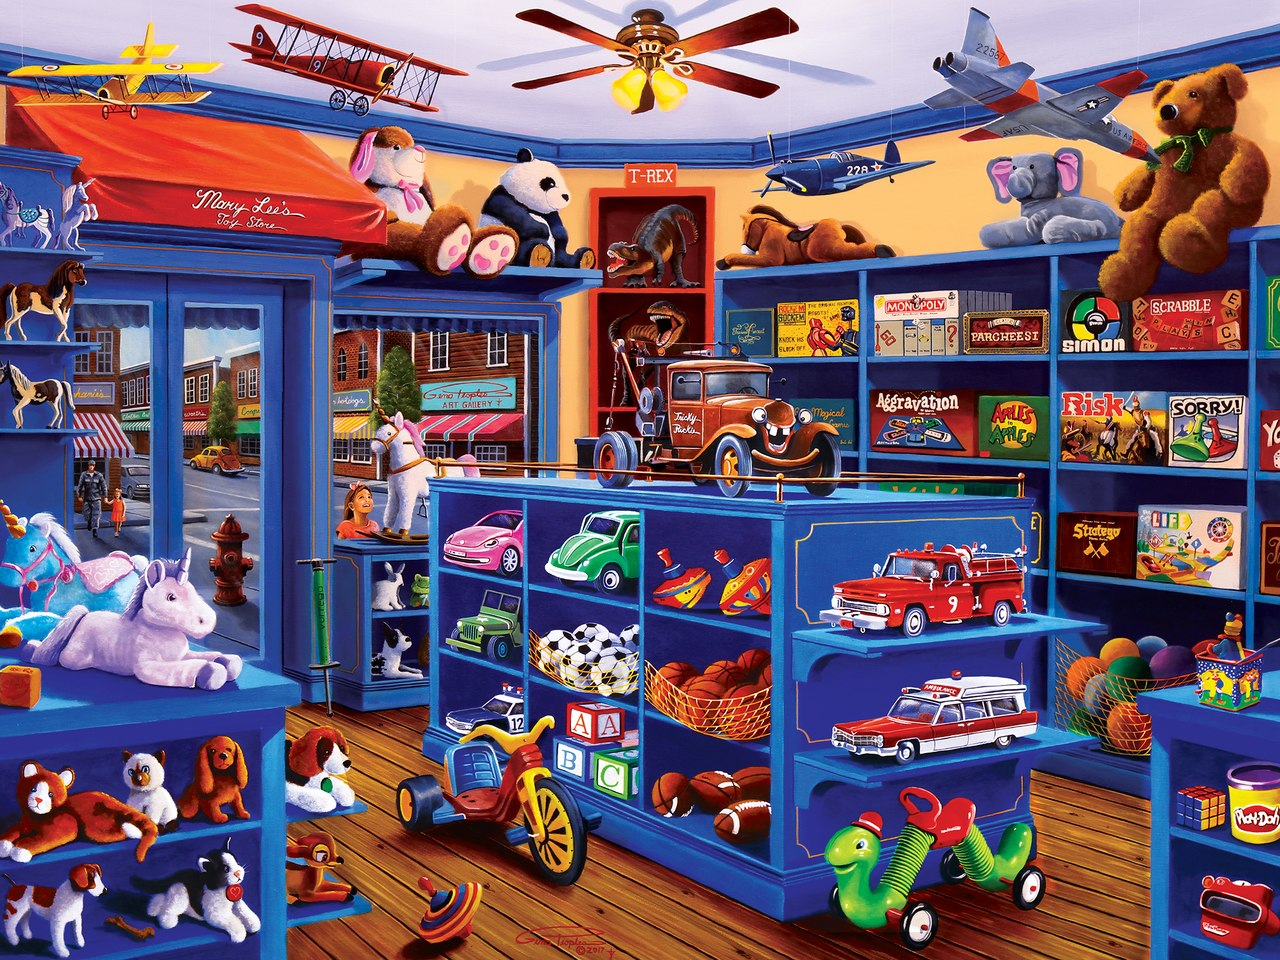 Mary Lee's Toy Store - 750pc Jigsaw Puzzle by Masterpieces  			  					NEW